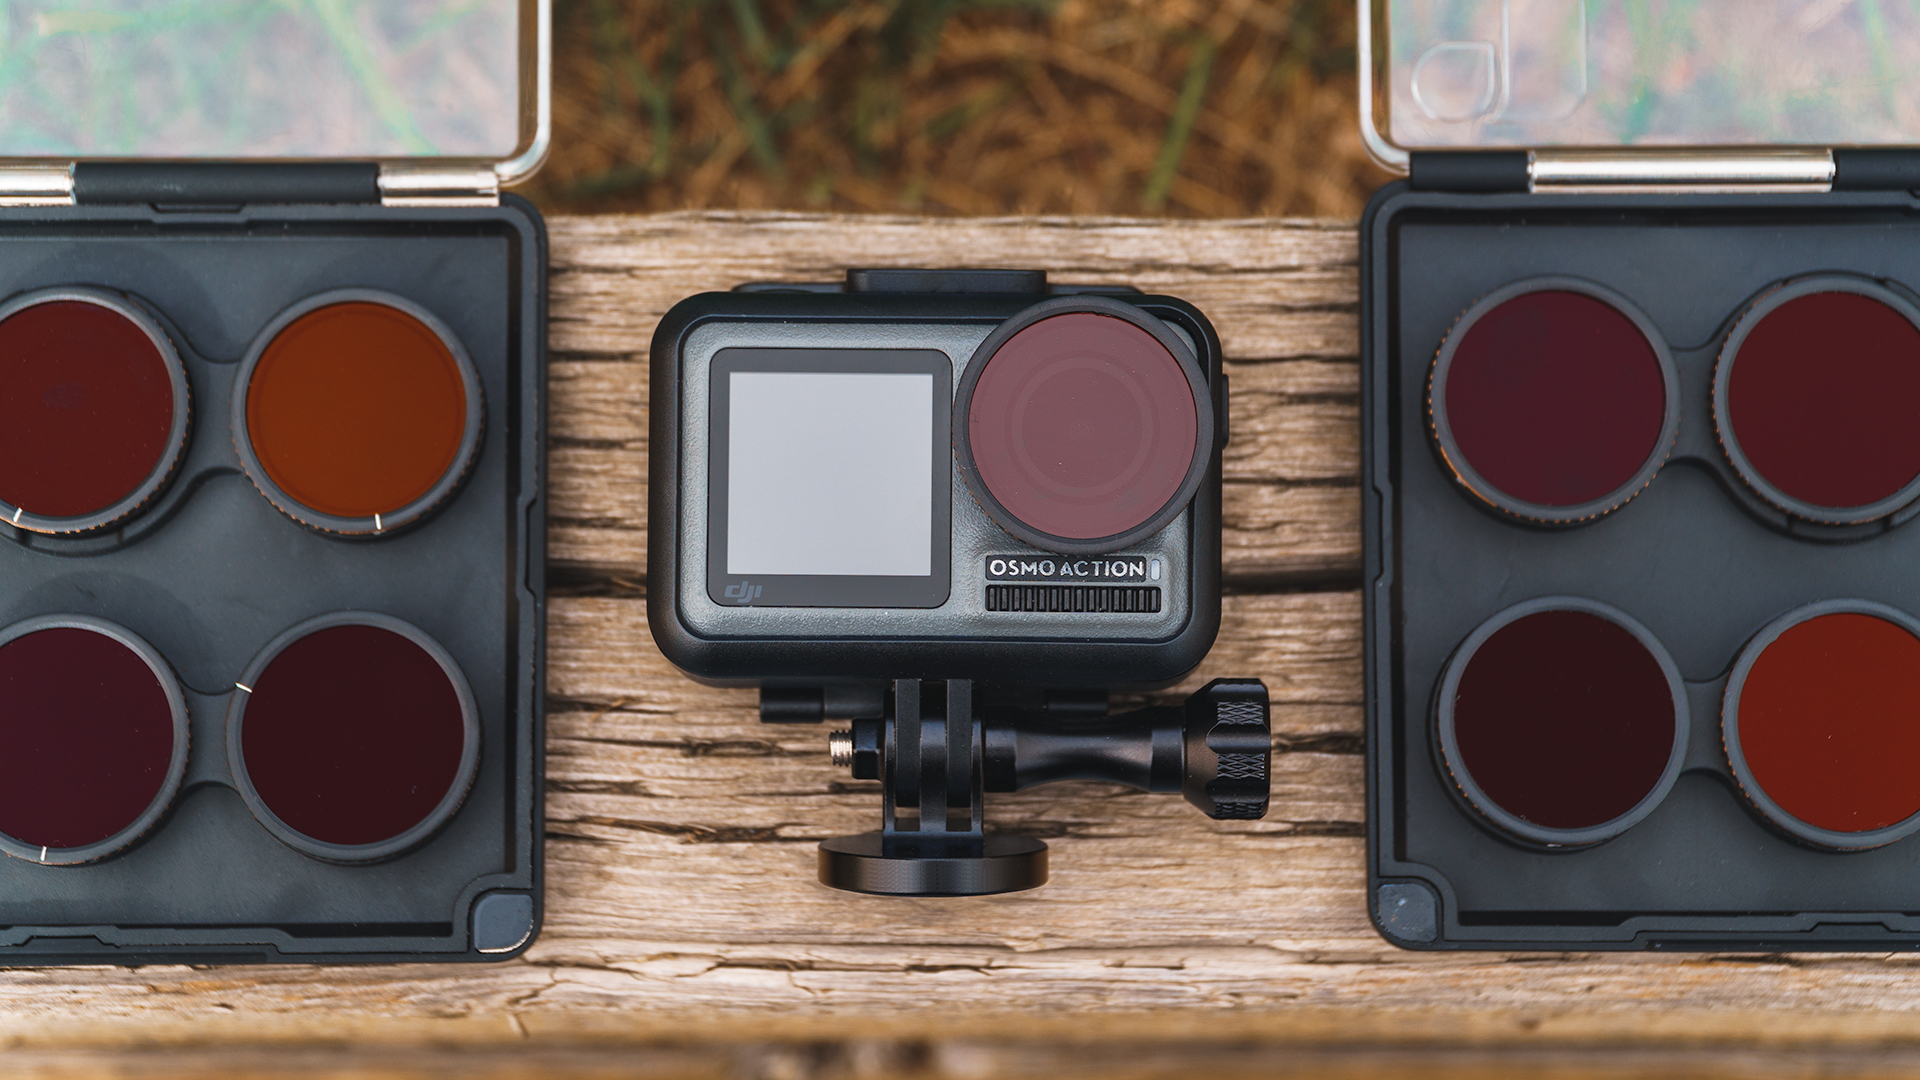 Why You Need ND Filters For Your DJI Osmo Action!